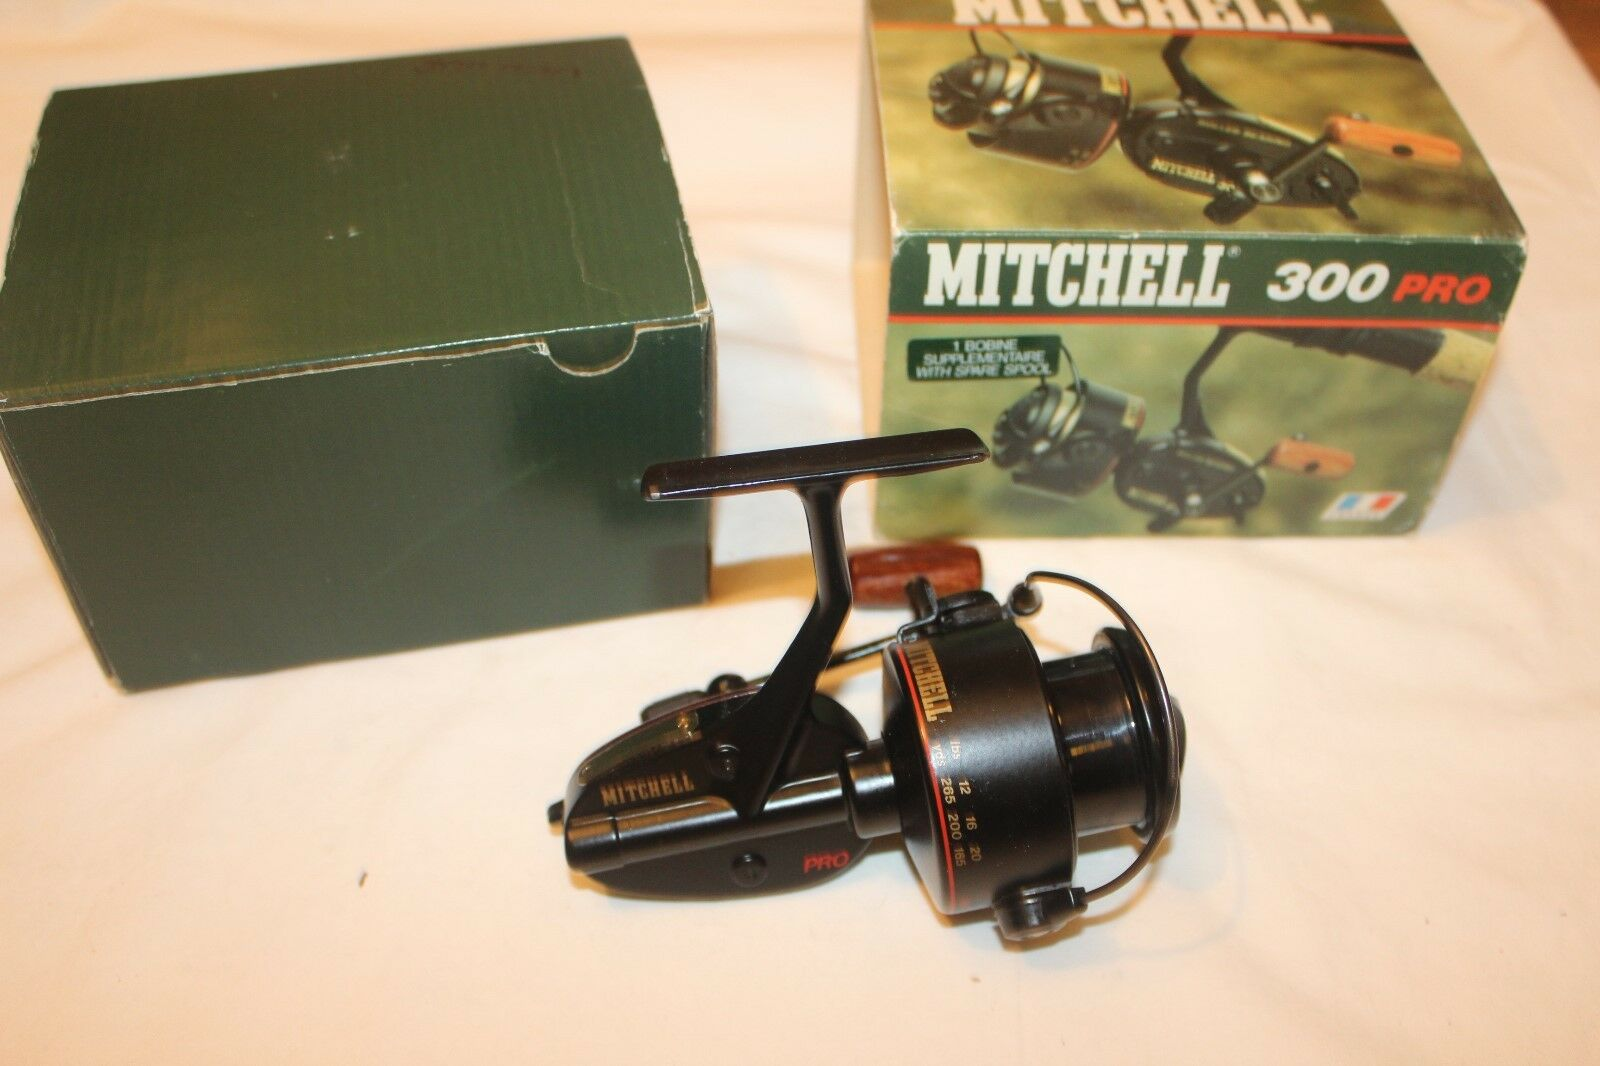 Mitchell 300 pro-en el embalaje original-made in france-nr-1307